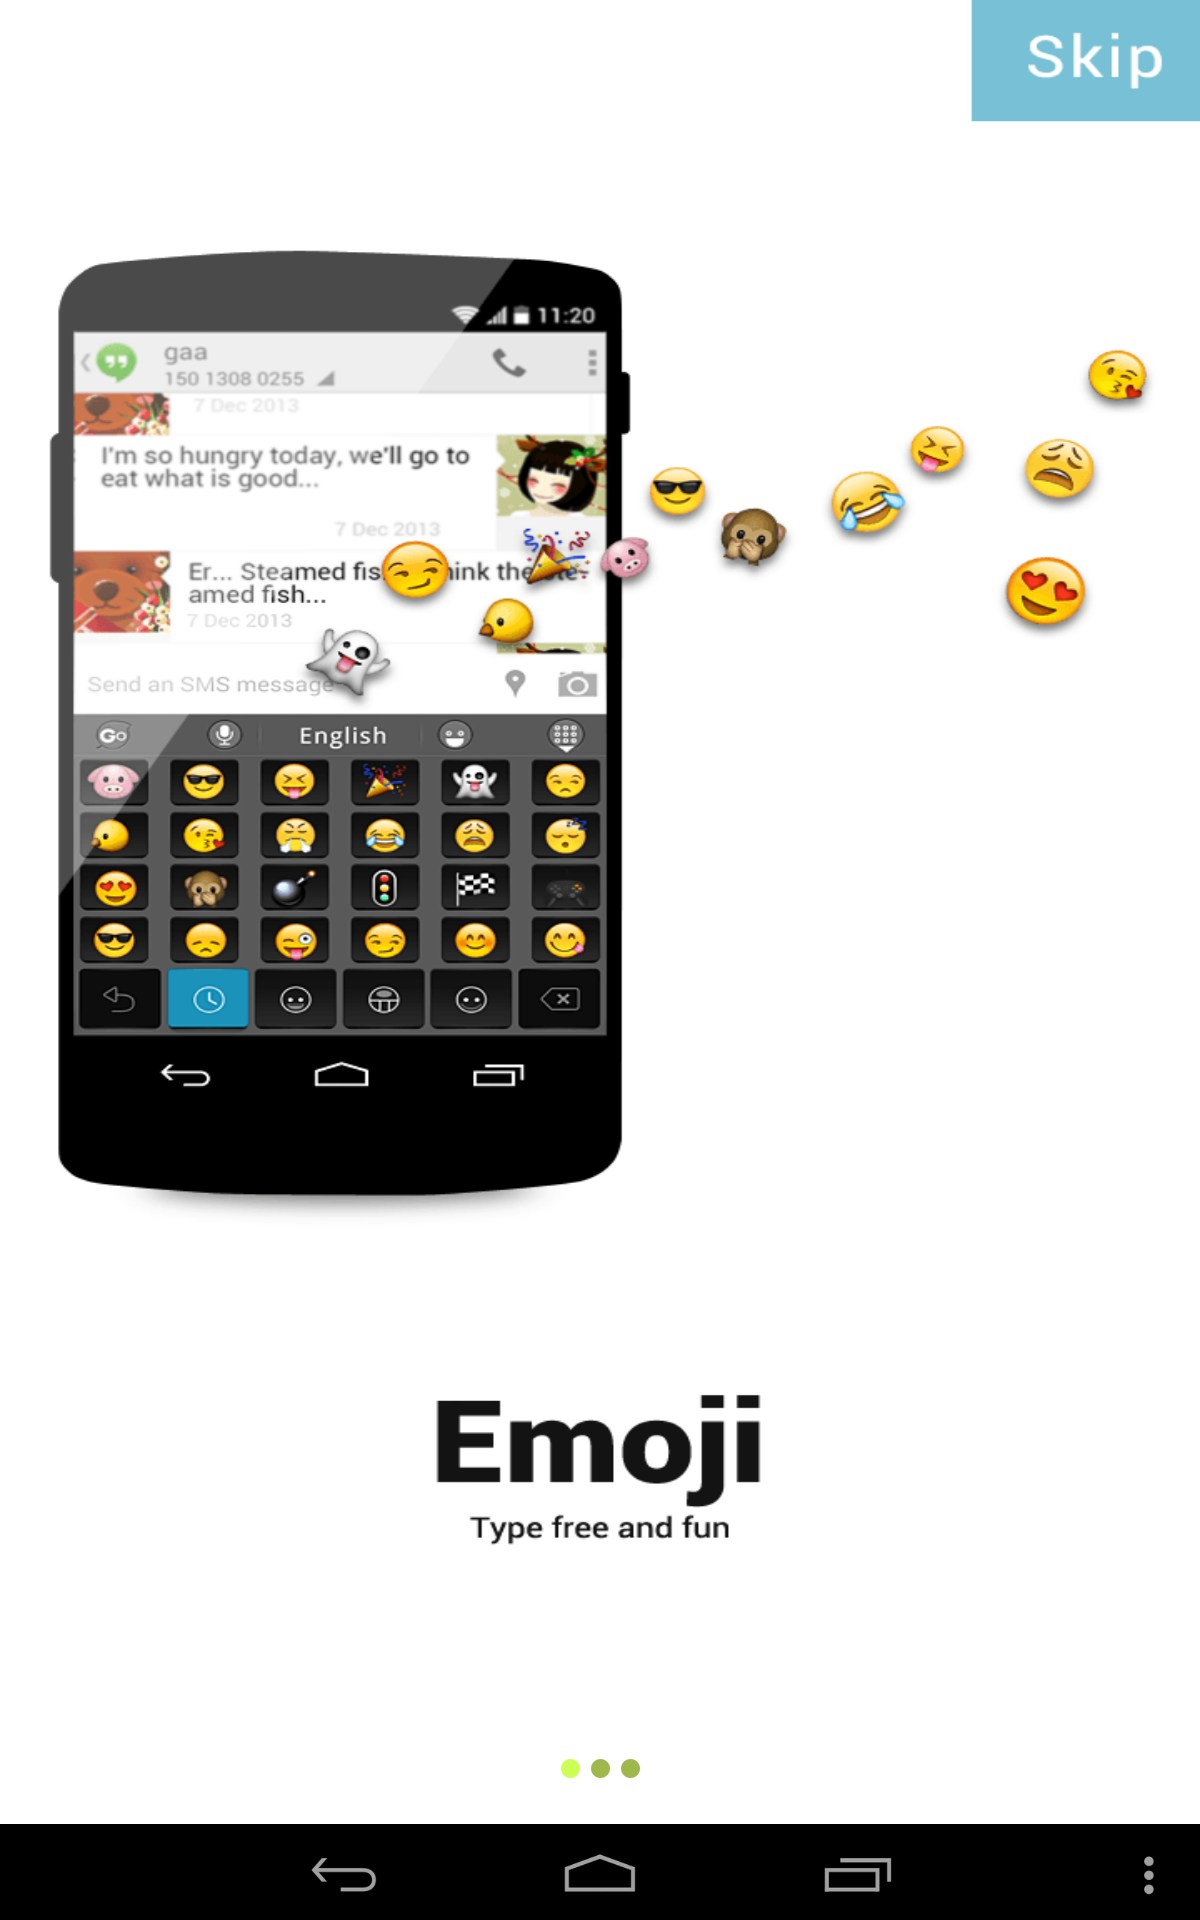 Go Sms Pro Themes Free Download For Samsung Galaxy Y S5360 - beerlivin